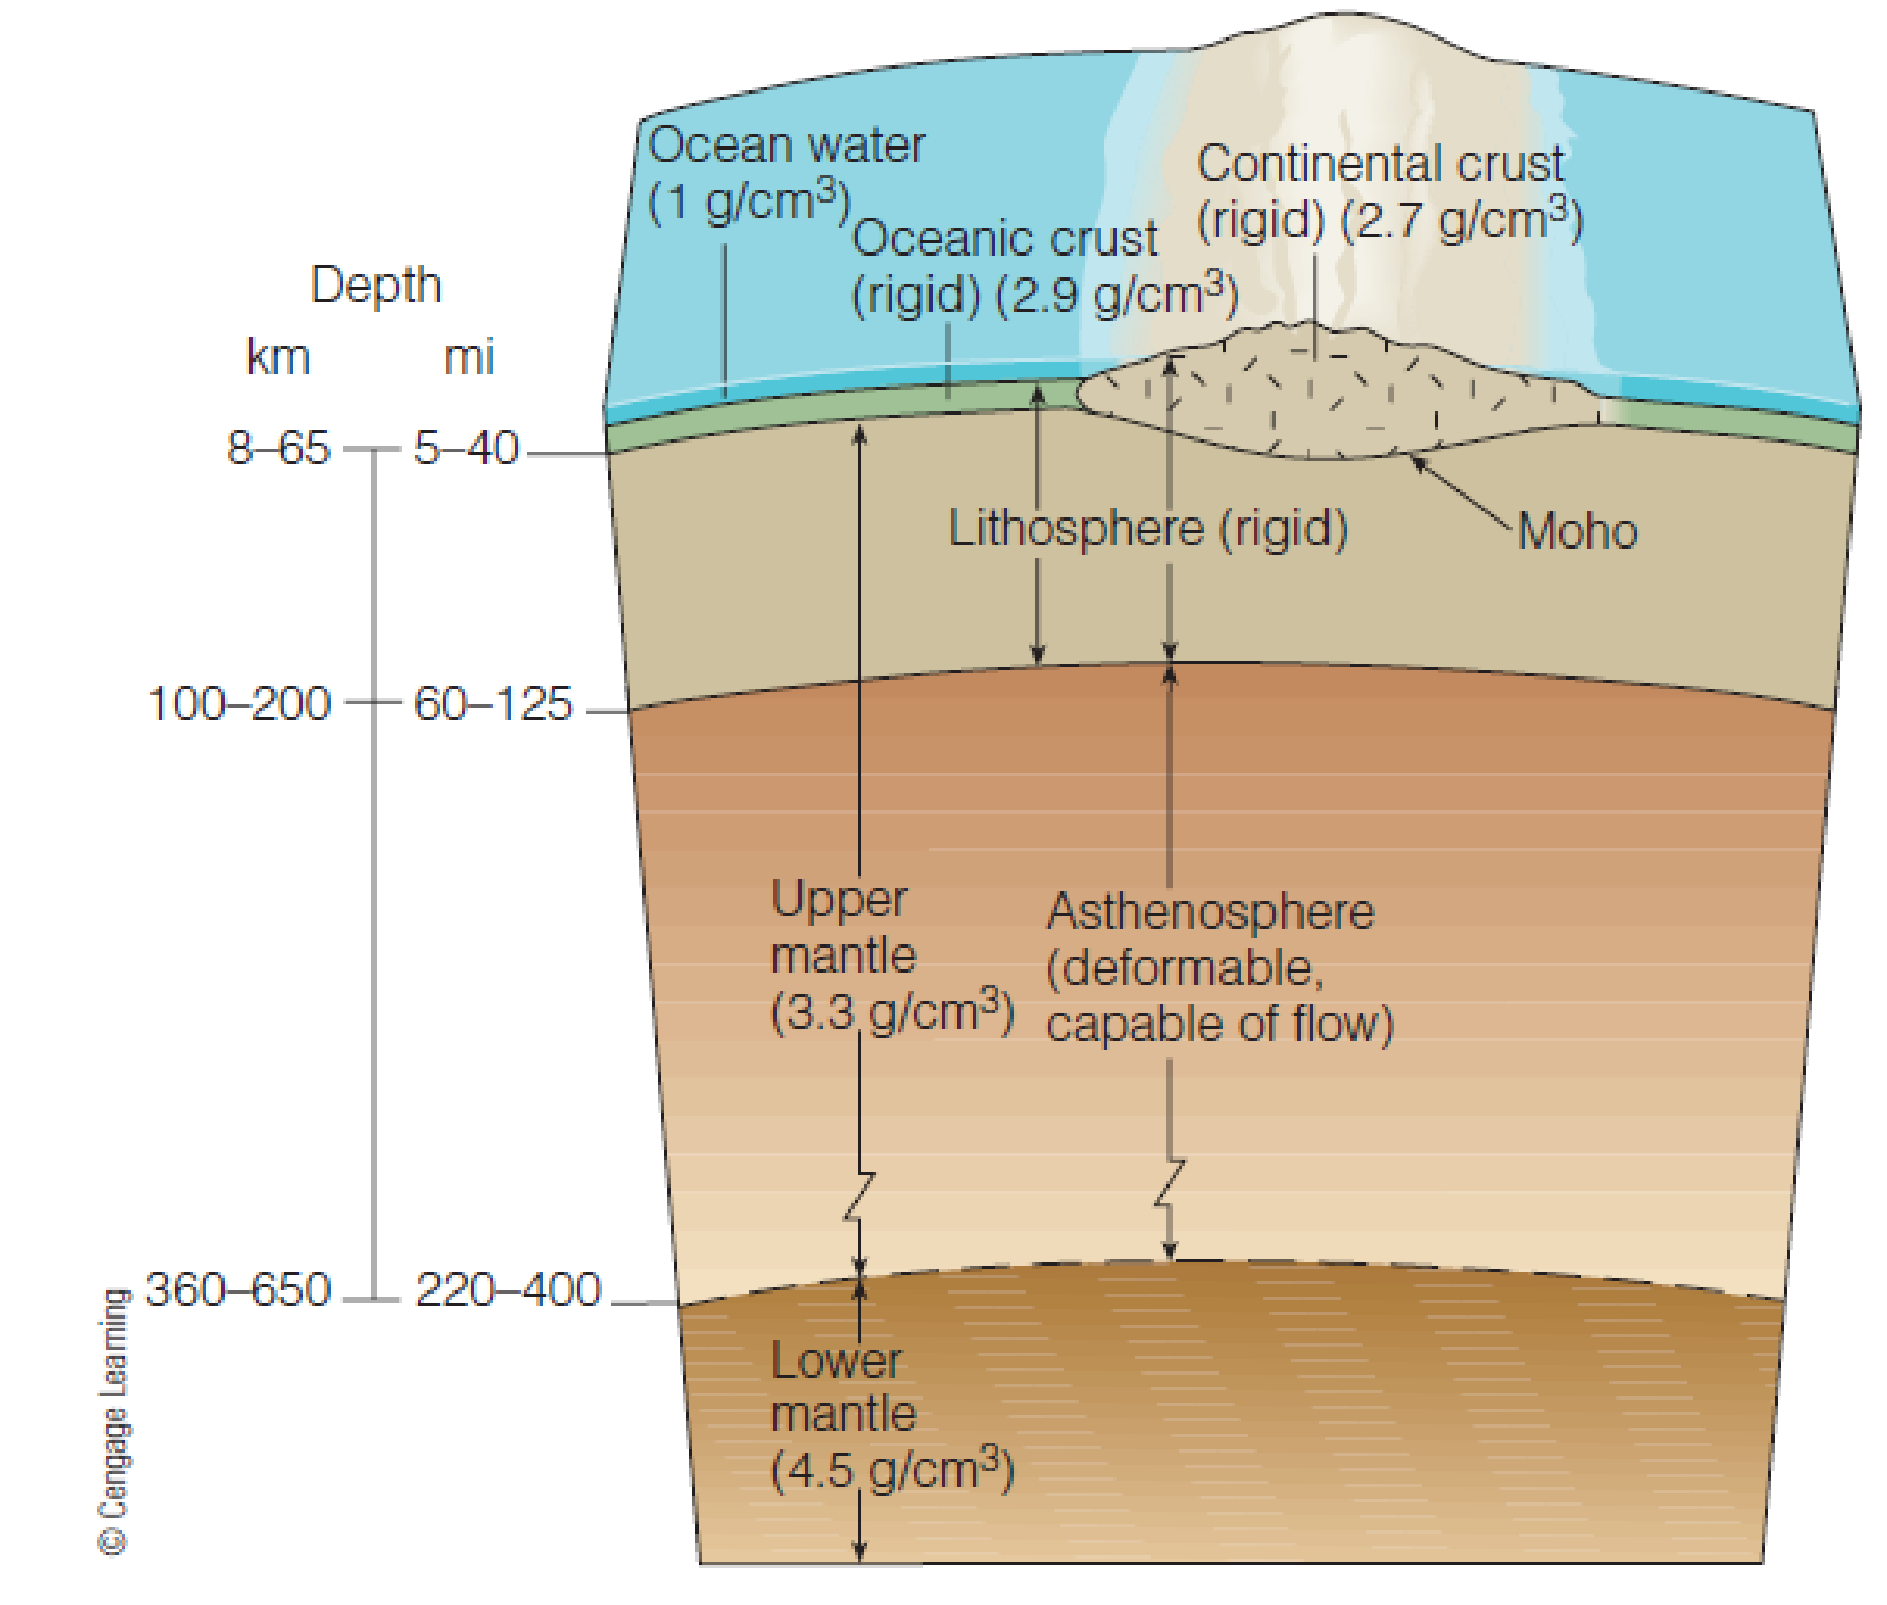 Chapter 10, Problem 4FQ, FIGURE 10.4 Cross section through Earths lithosphere and asthenosphere, and extending lower into the